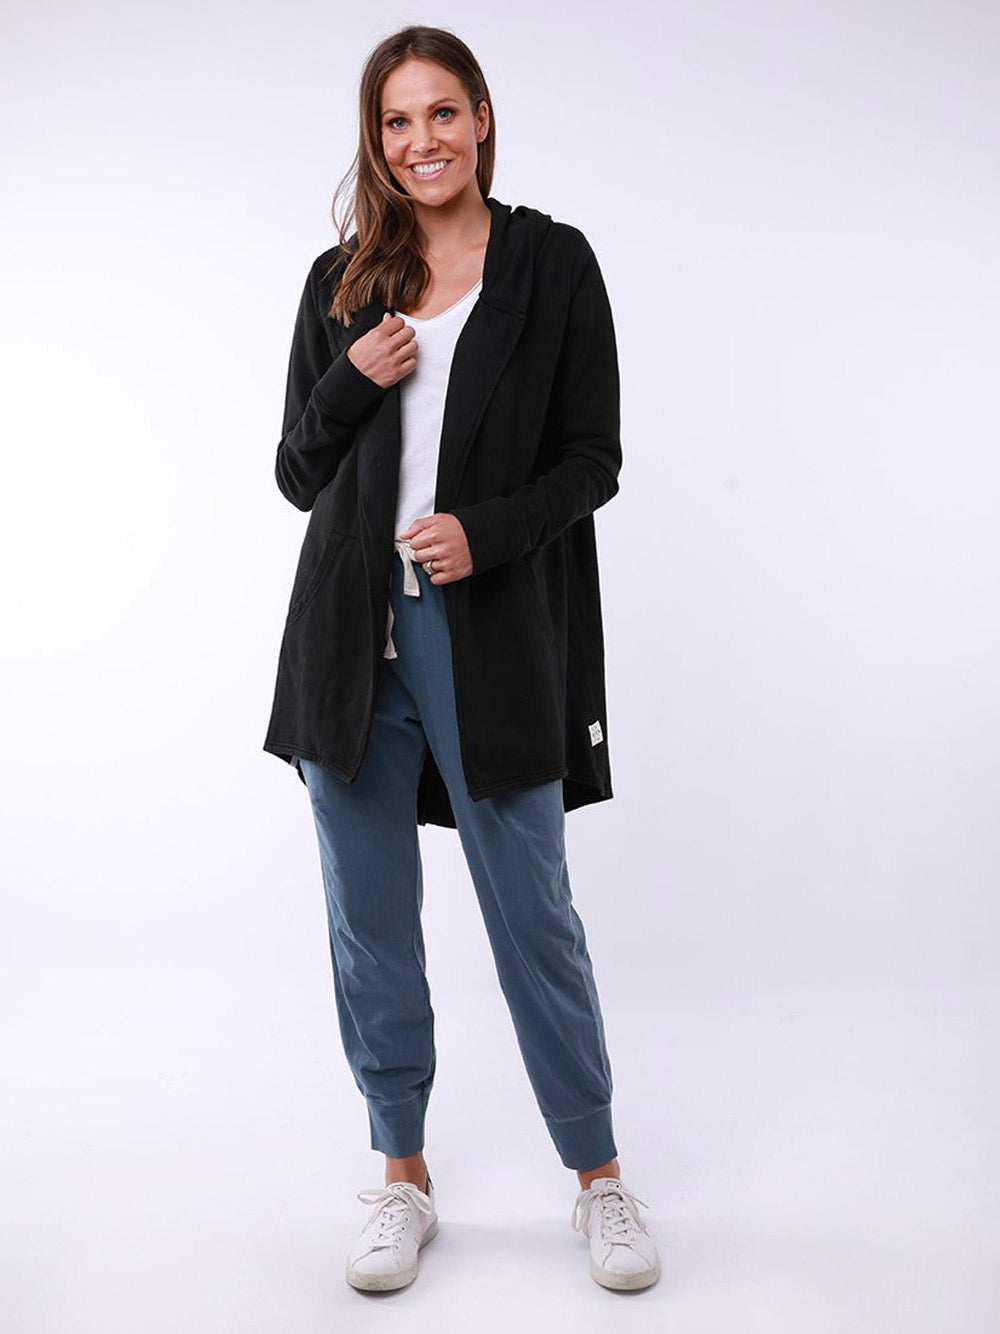 ELM LIFESTYLE Composure Hooded Cardigan